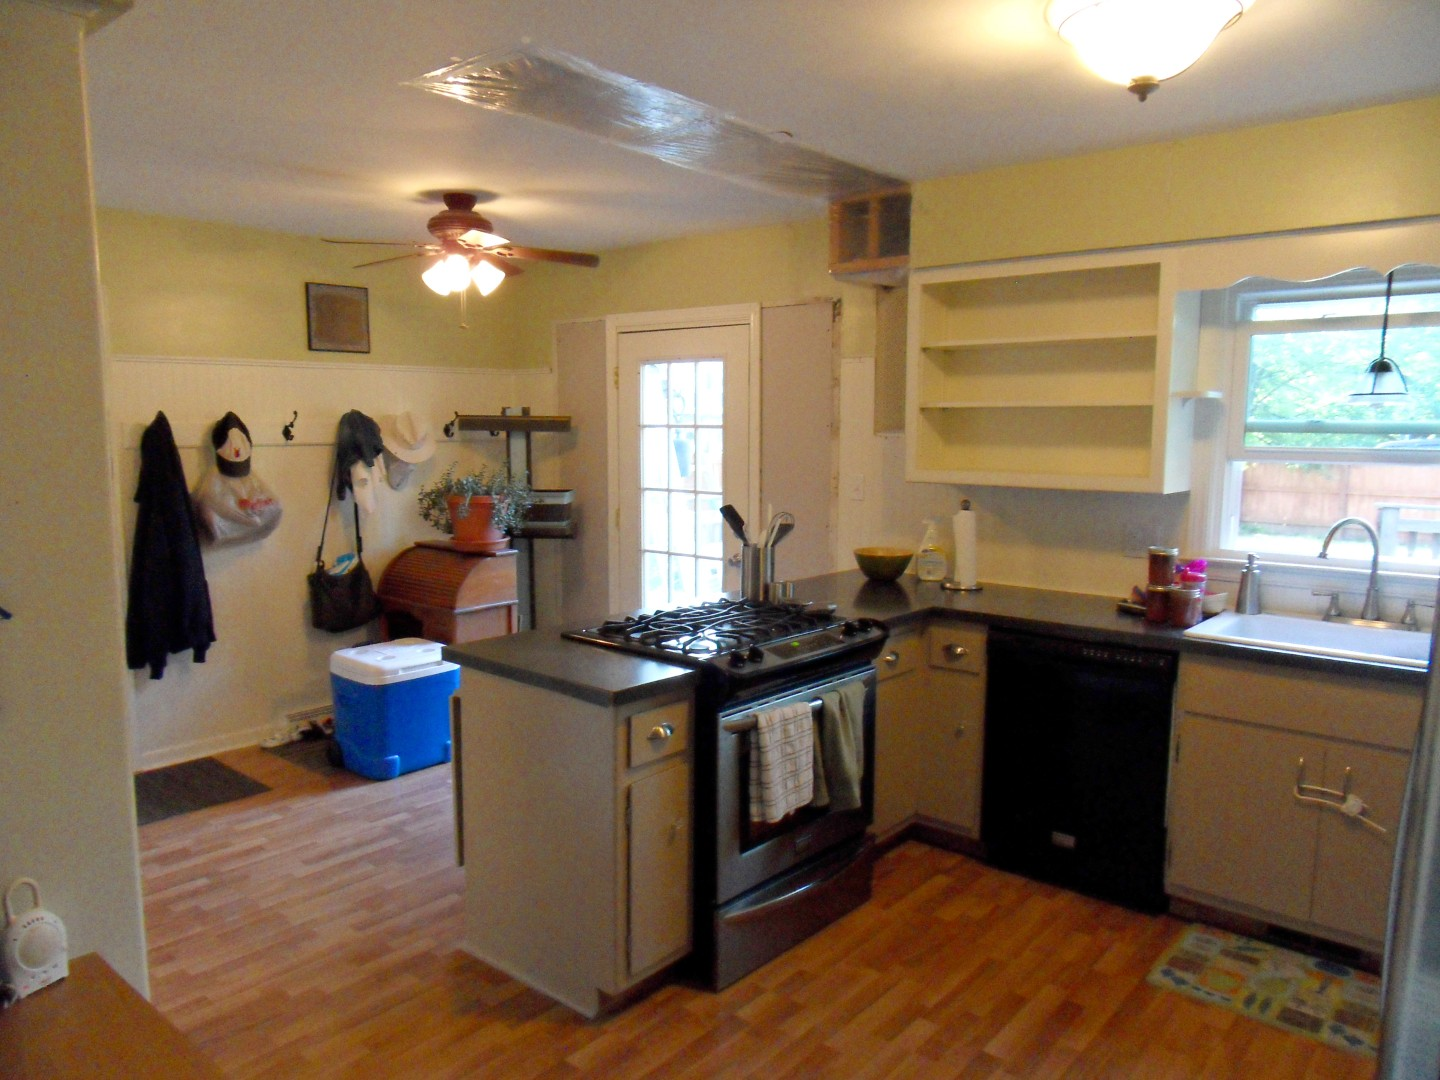 Life of Gregory D: Kitchen Renovation - Part 2